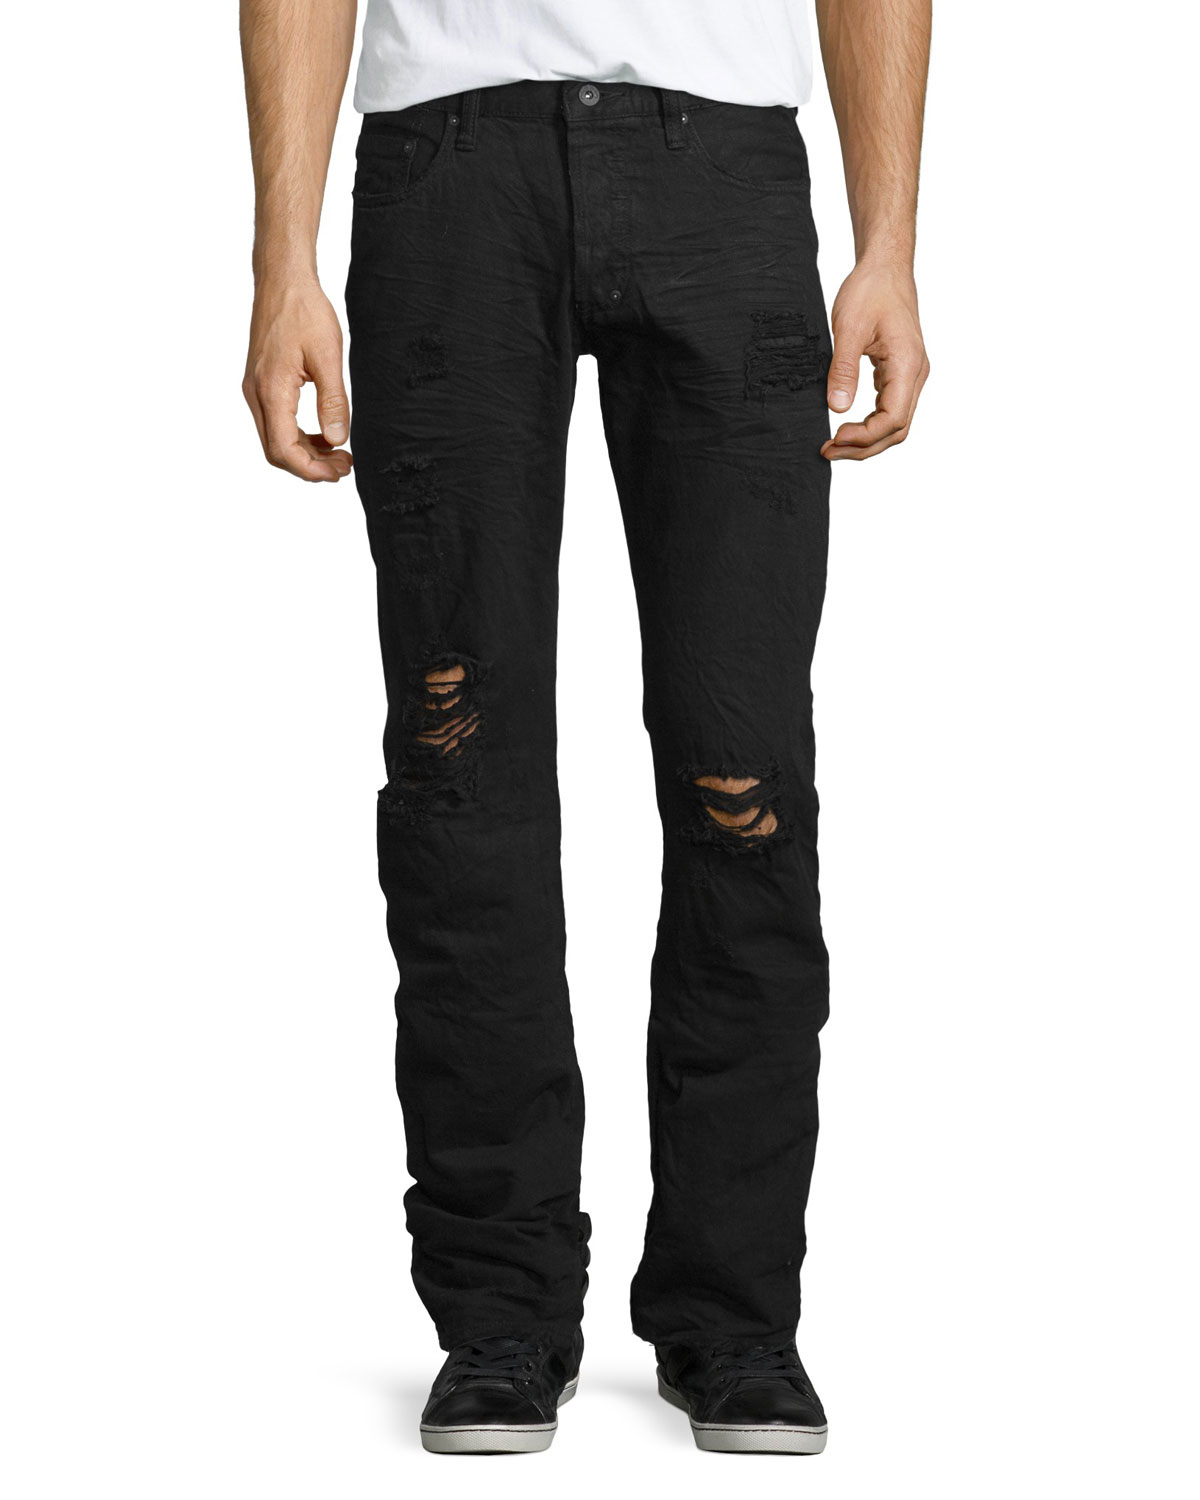 Lyst - Prps Barracuda Distressed Straight-leg Denim Jeans ...